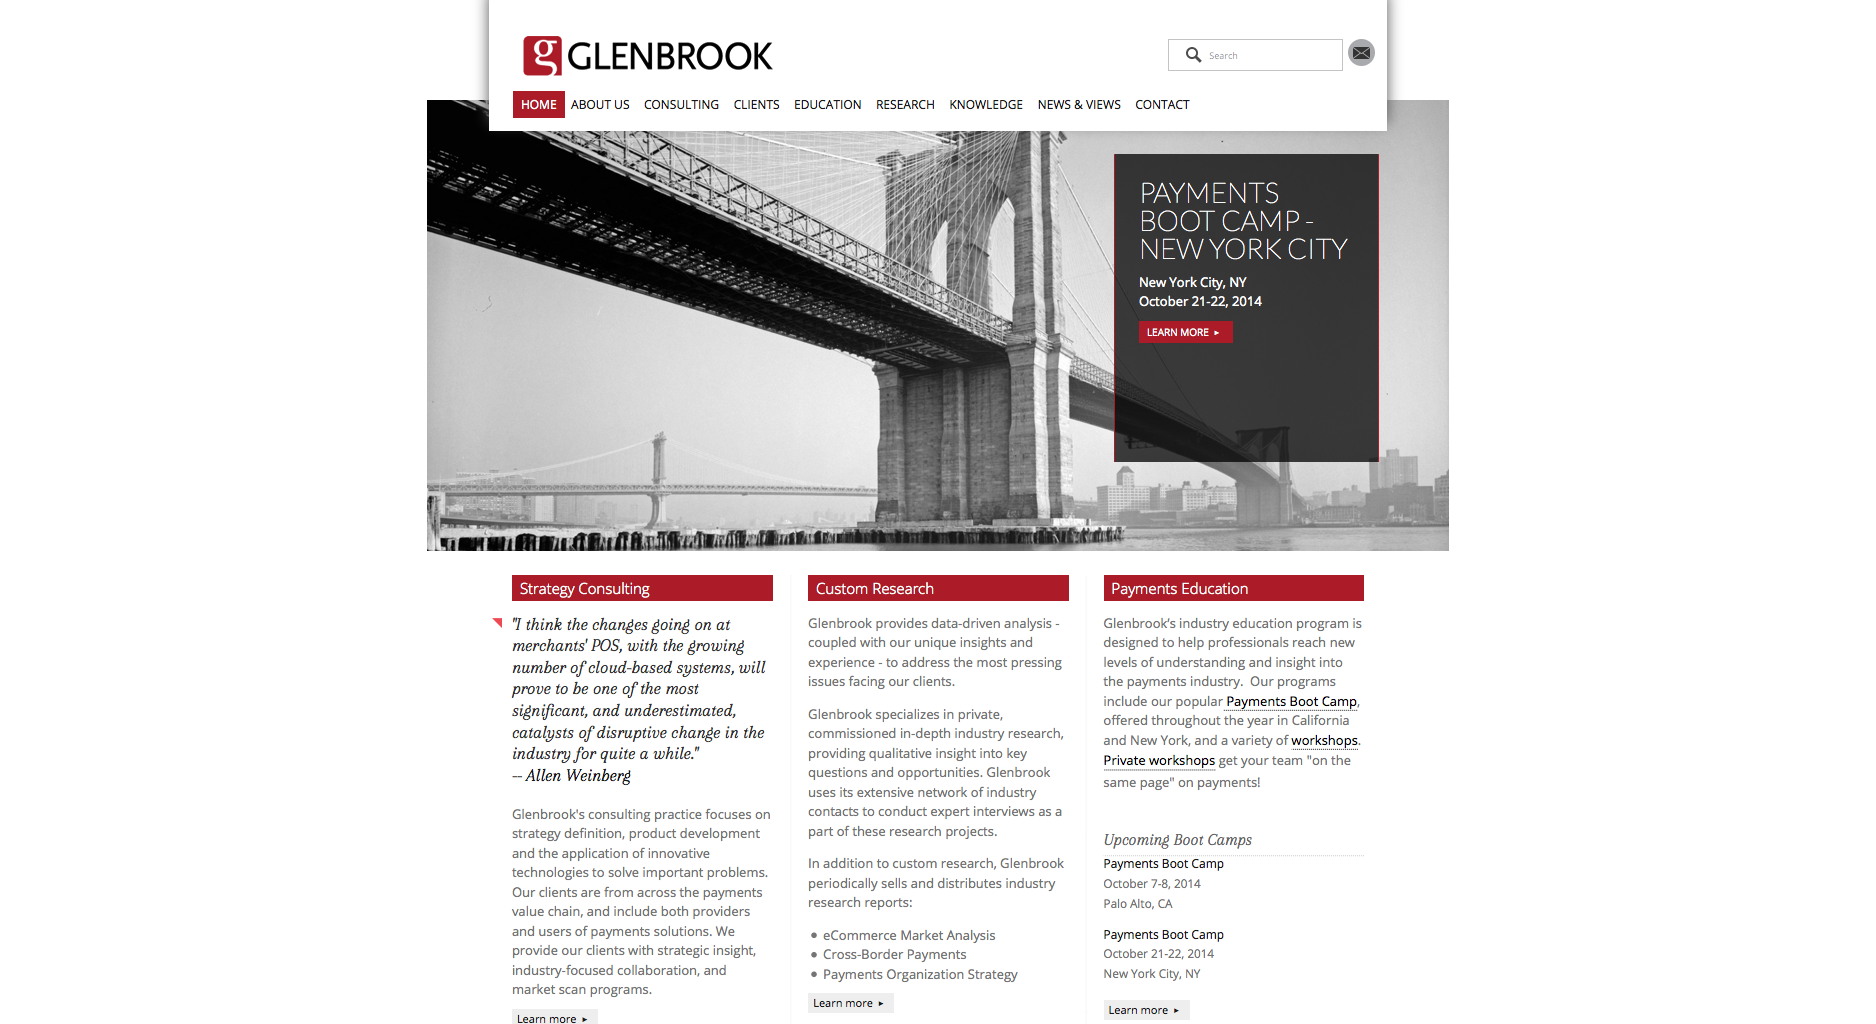 Glenbrook | Global Payments